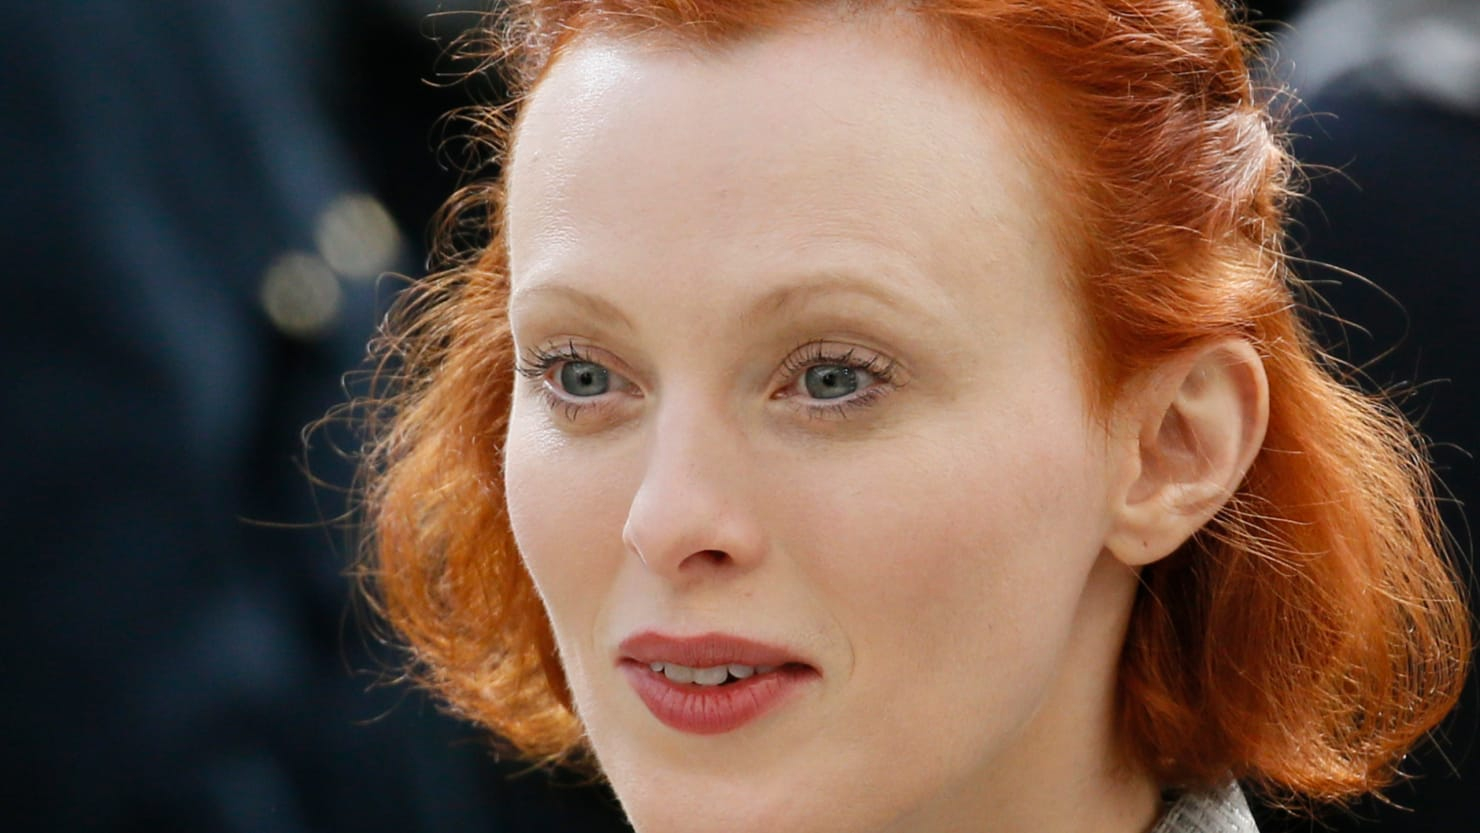 Ryan Adams Scandal: Model Karen Elson Says She Also Has 'Traumatizing' Story